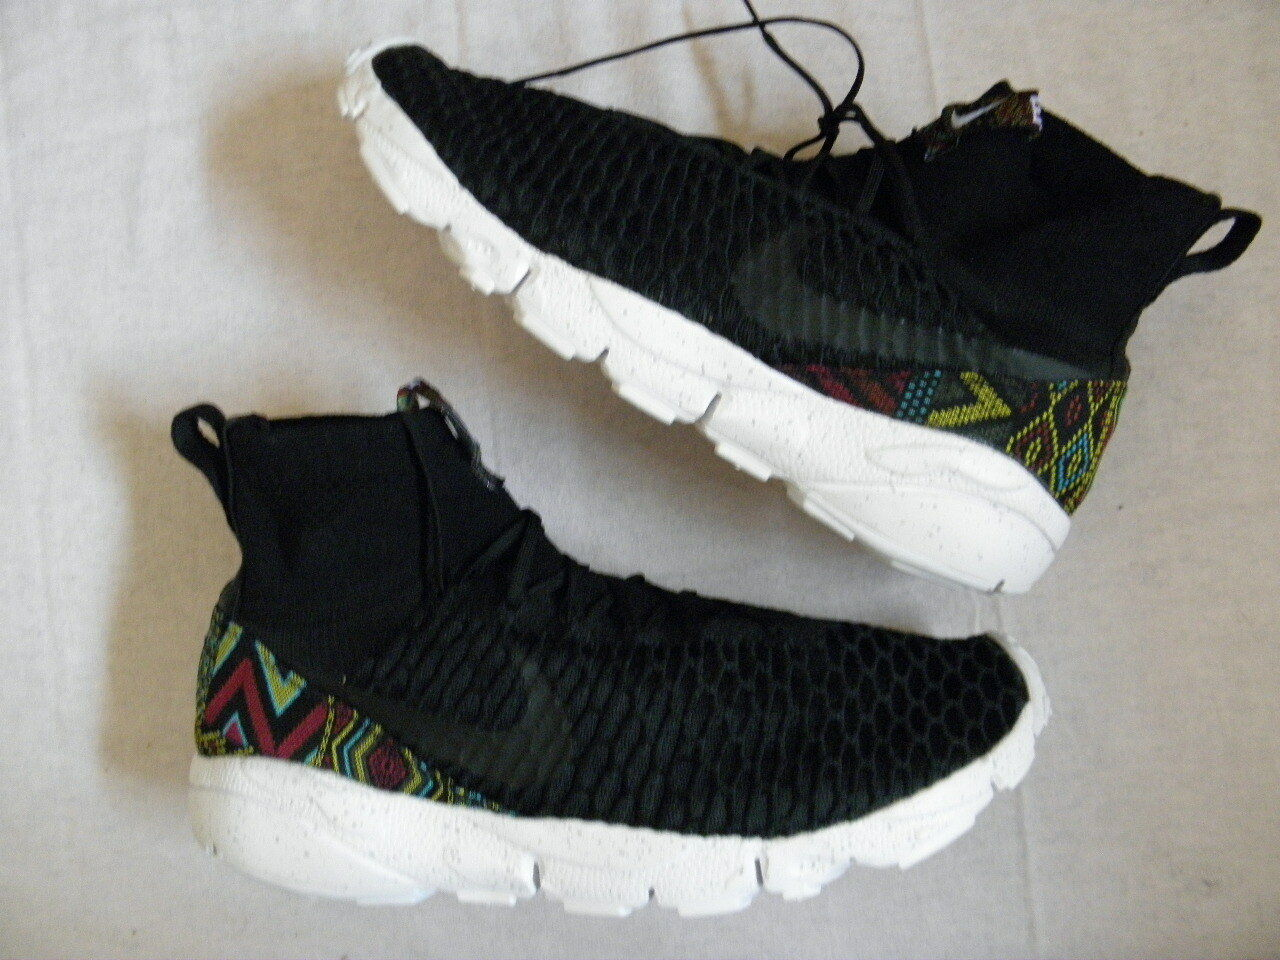 Nike Air Footscape Month Magista BHM Black History Month Footscape Rouesting Flyknit s 11 DS NEW 7a41de